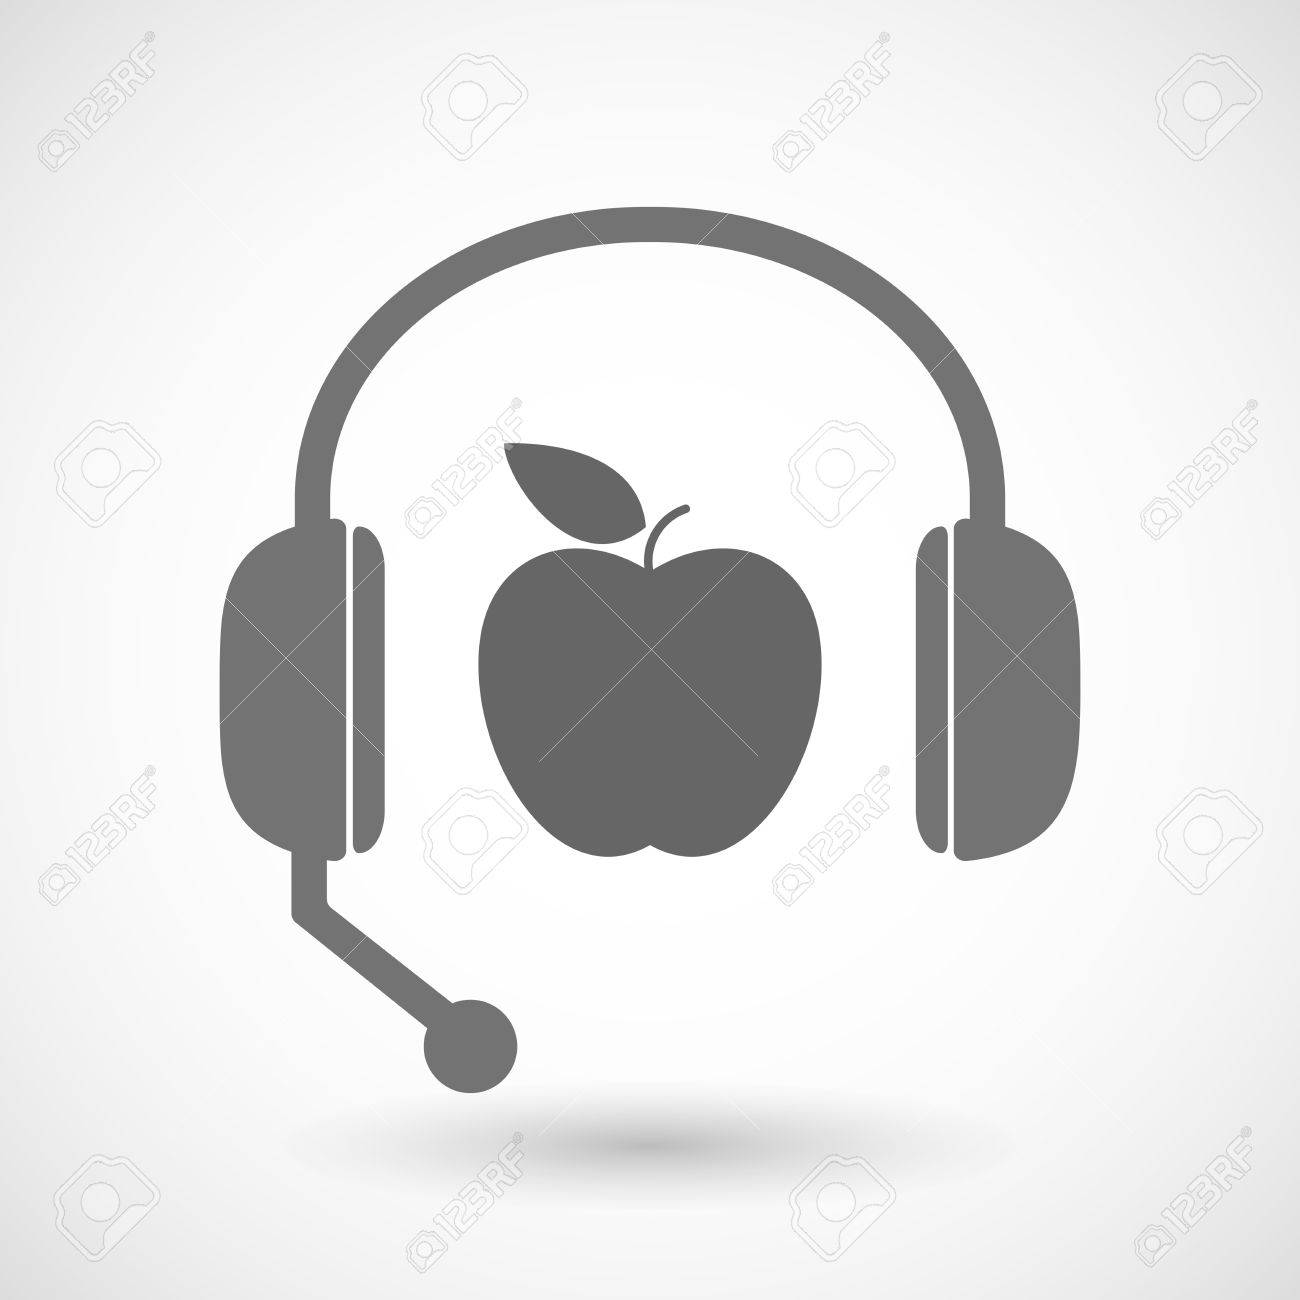 Illustration Of A Remote Assistance Headset Icon With An Apple     Illustration of a remote assistance headset icon with an apple Stock Vector    49651286